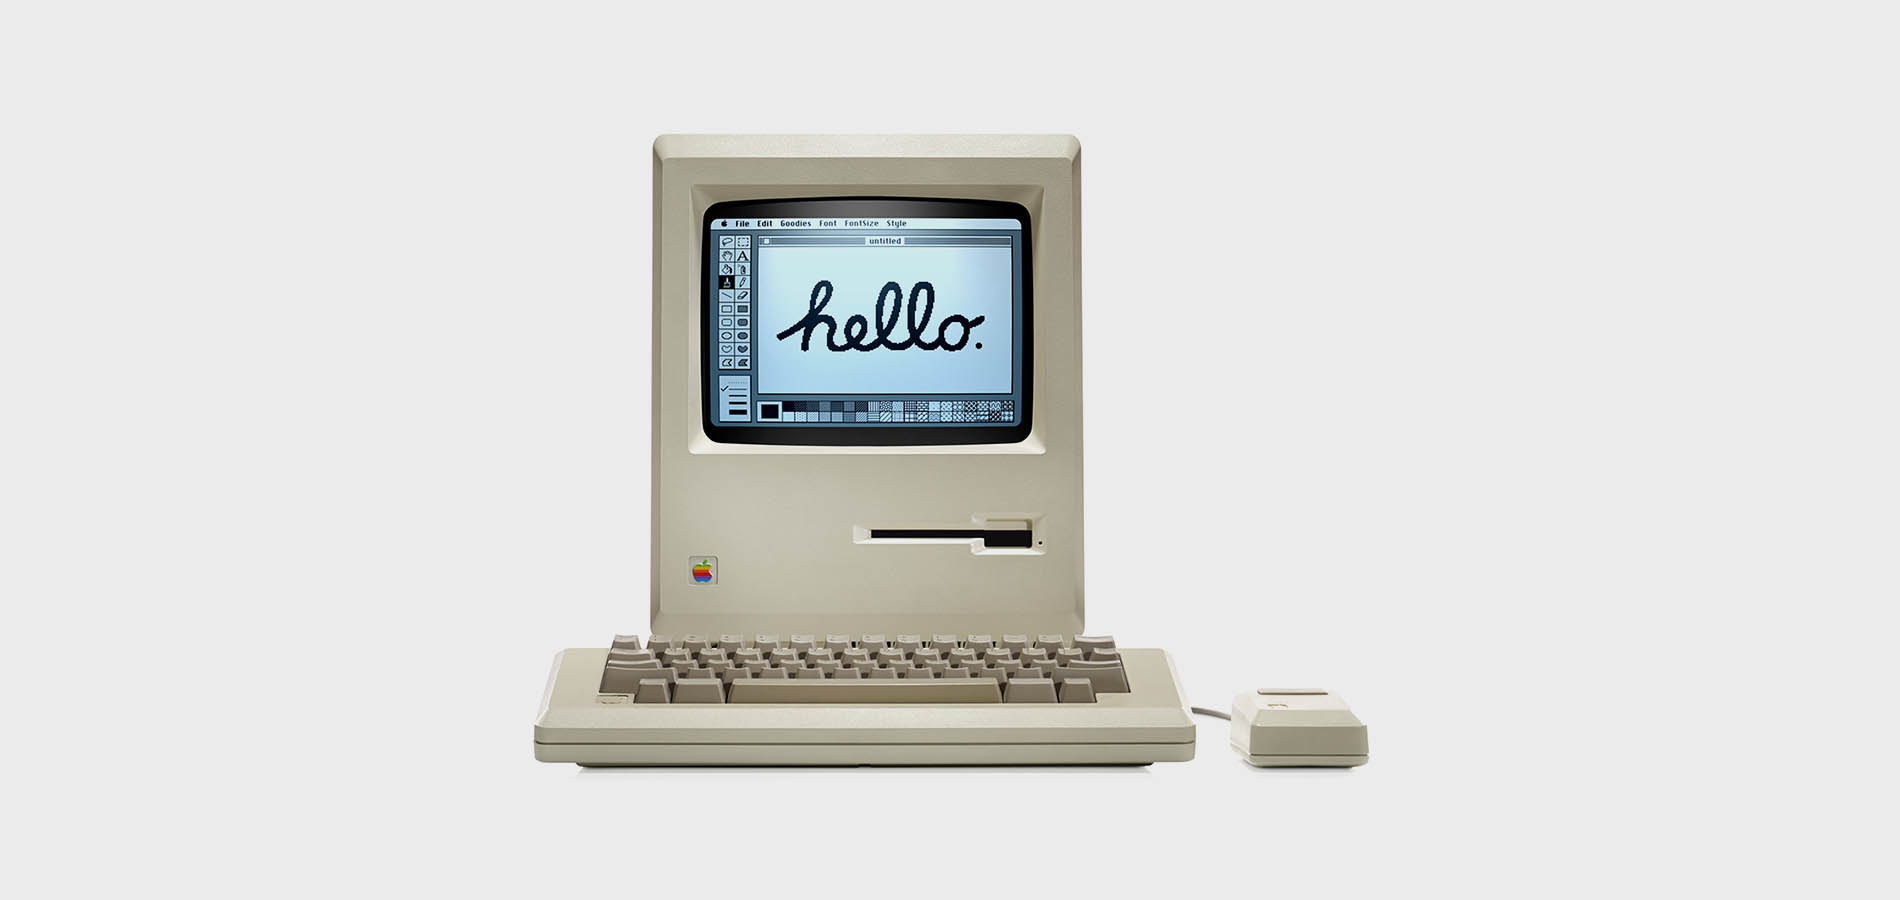 The original Macintosh in 1984 featuring Kare's user interface and 'Hello' illustration.